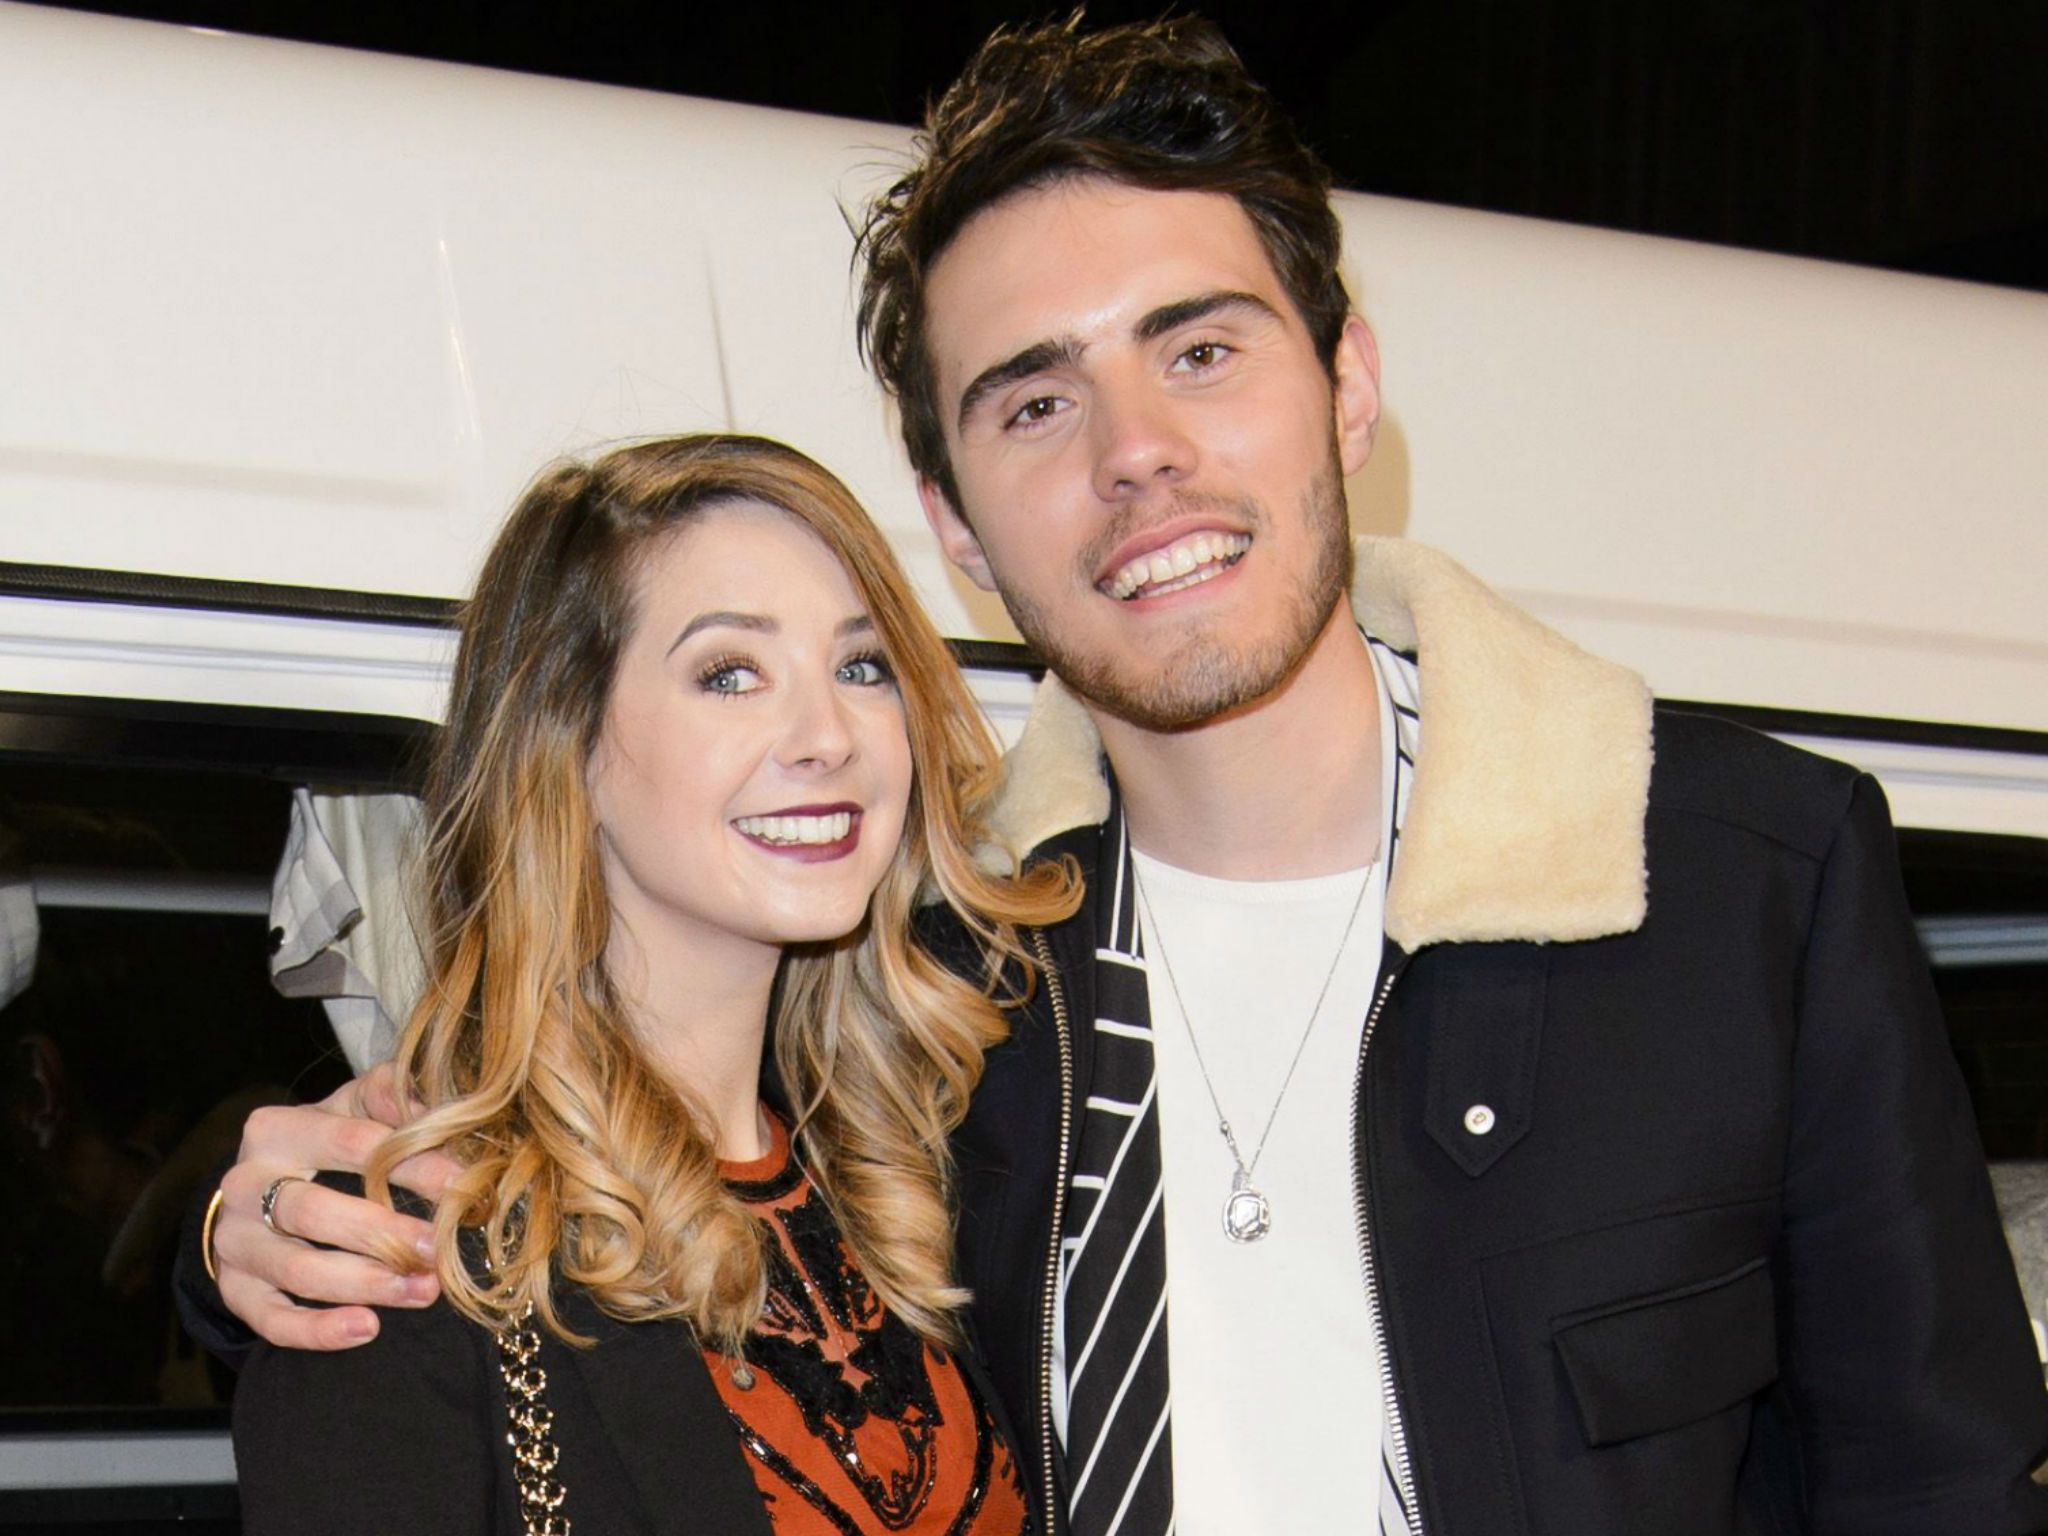 alfie deyes and zoe sugg - Google Search | YouTubers ...